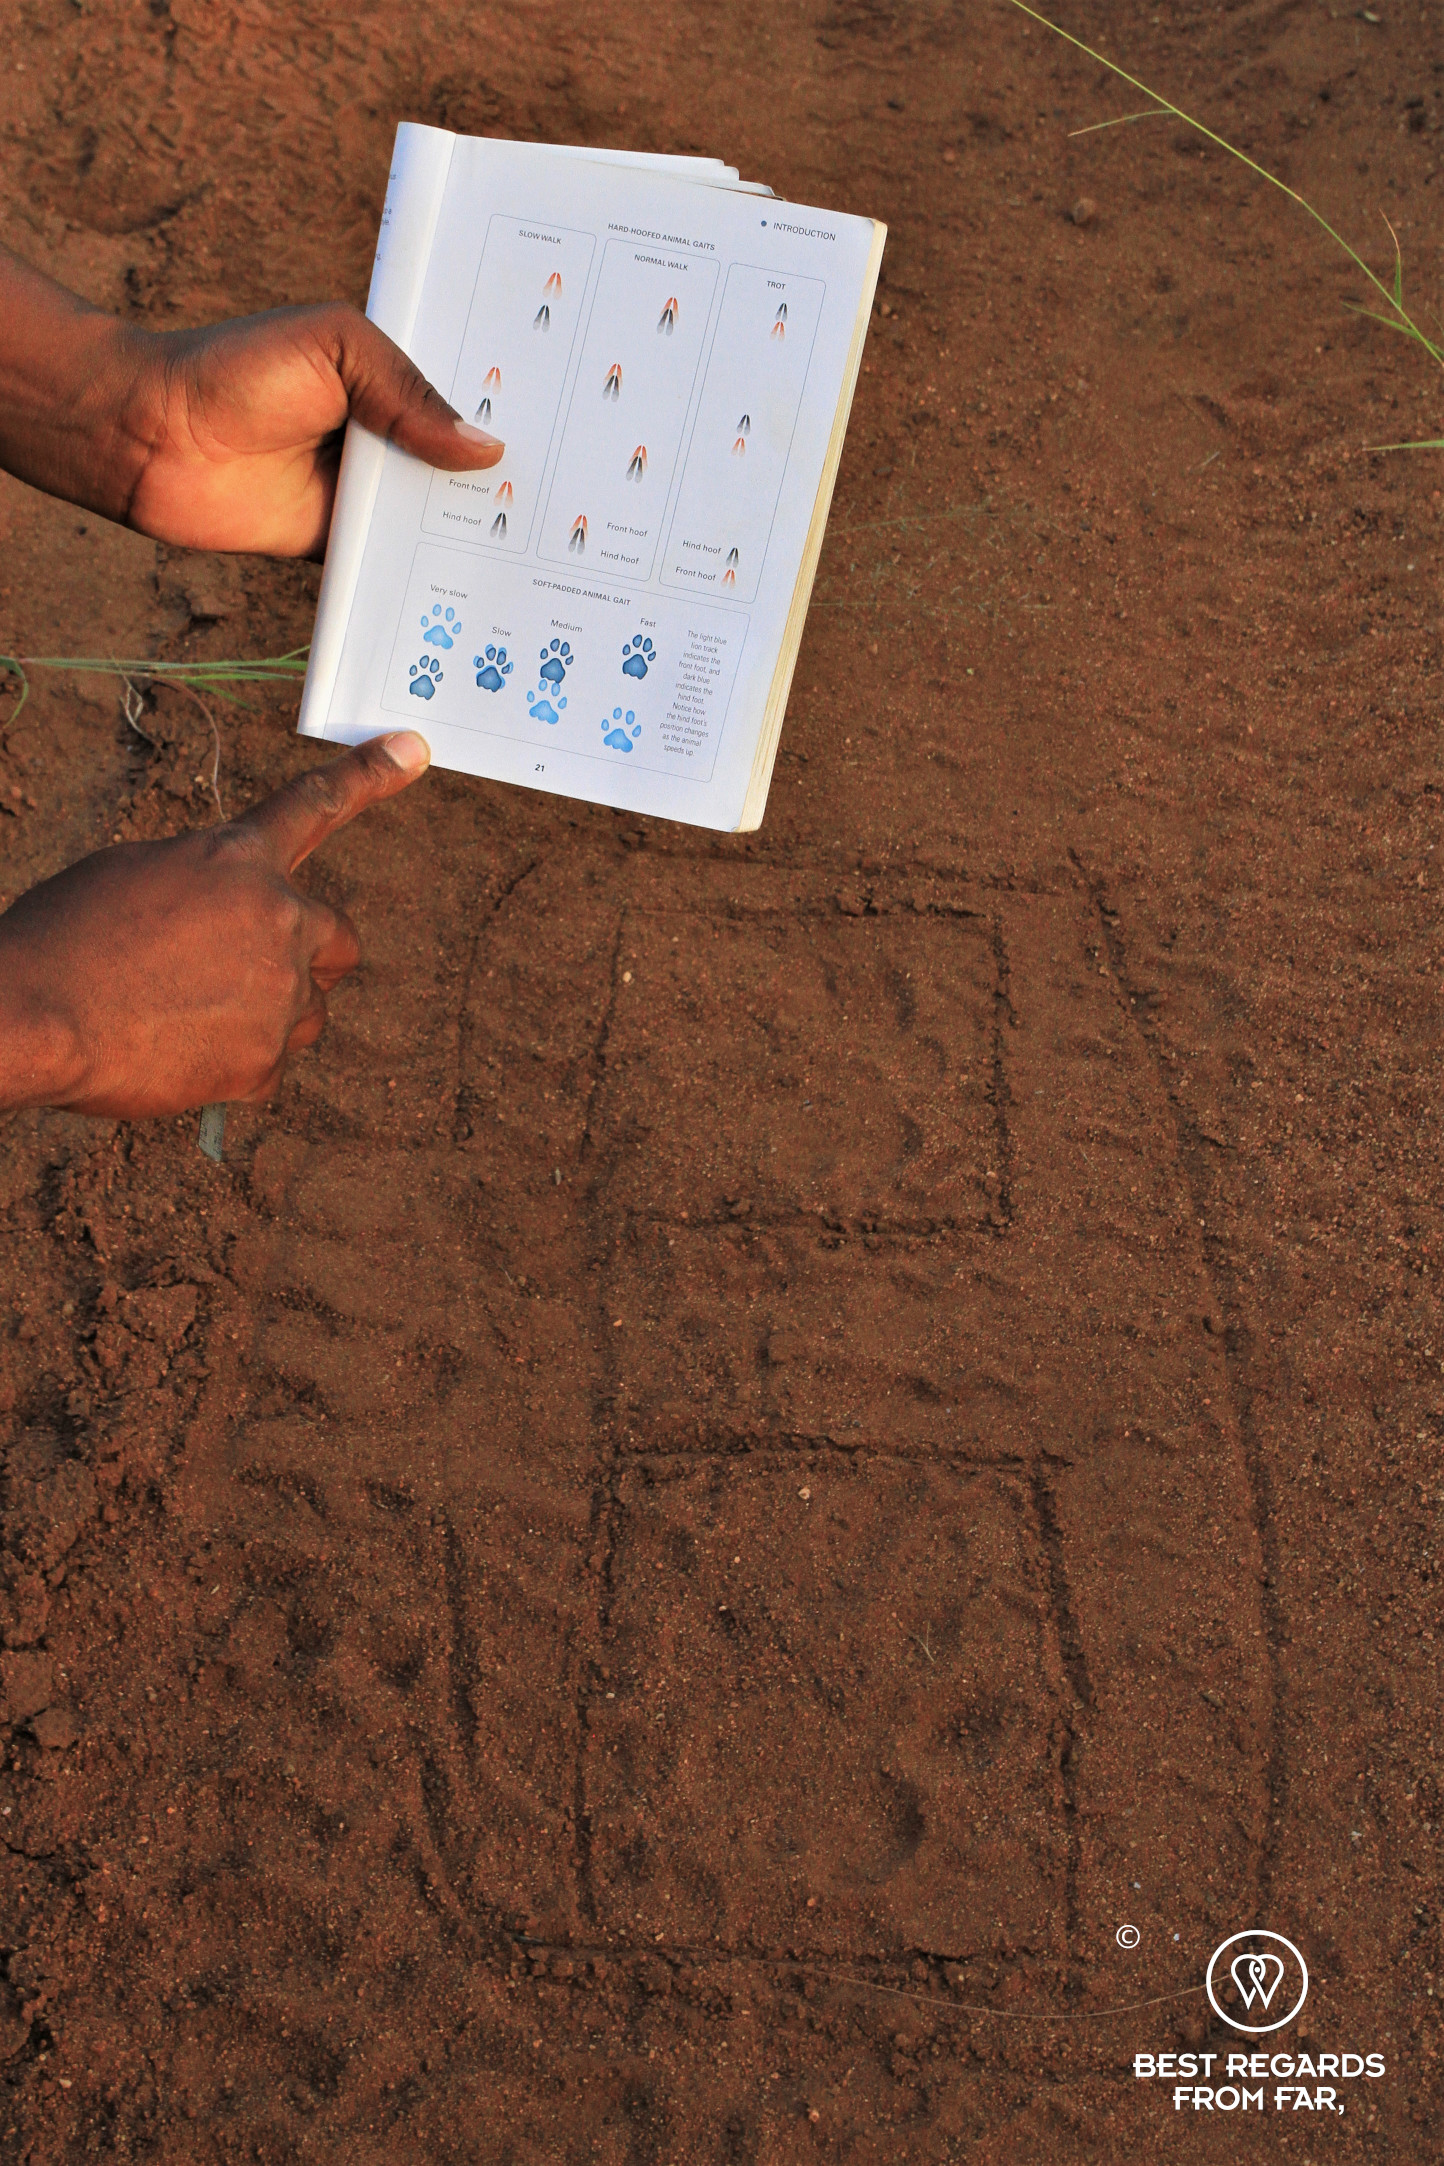 Lion tracks in the red sand with instructor pointing at a tracking book